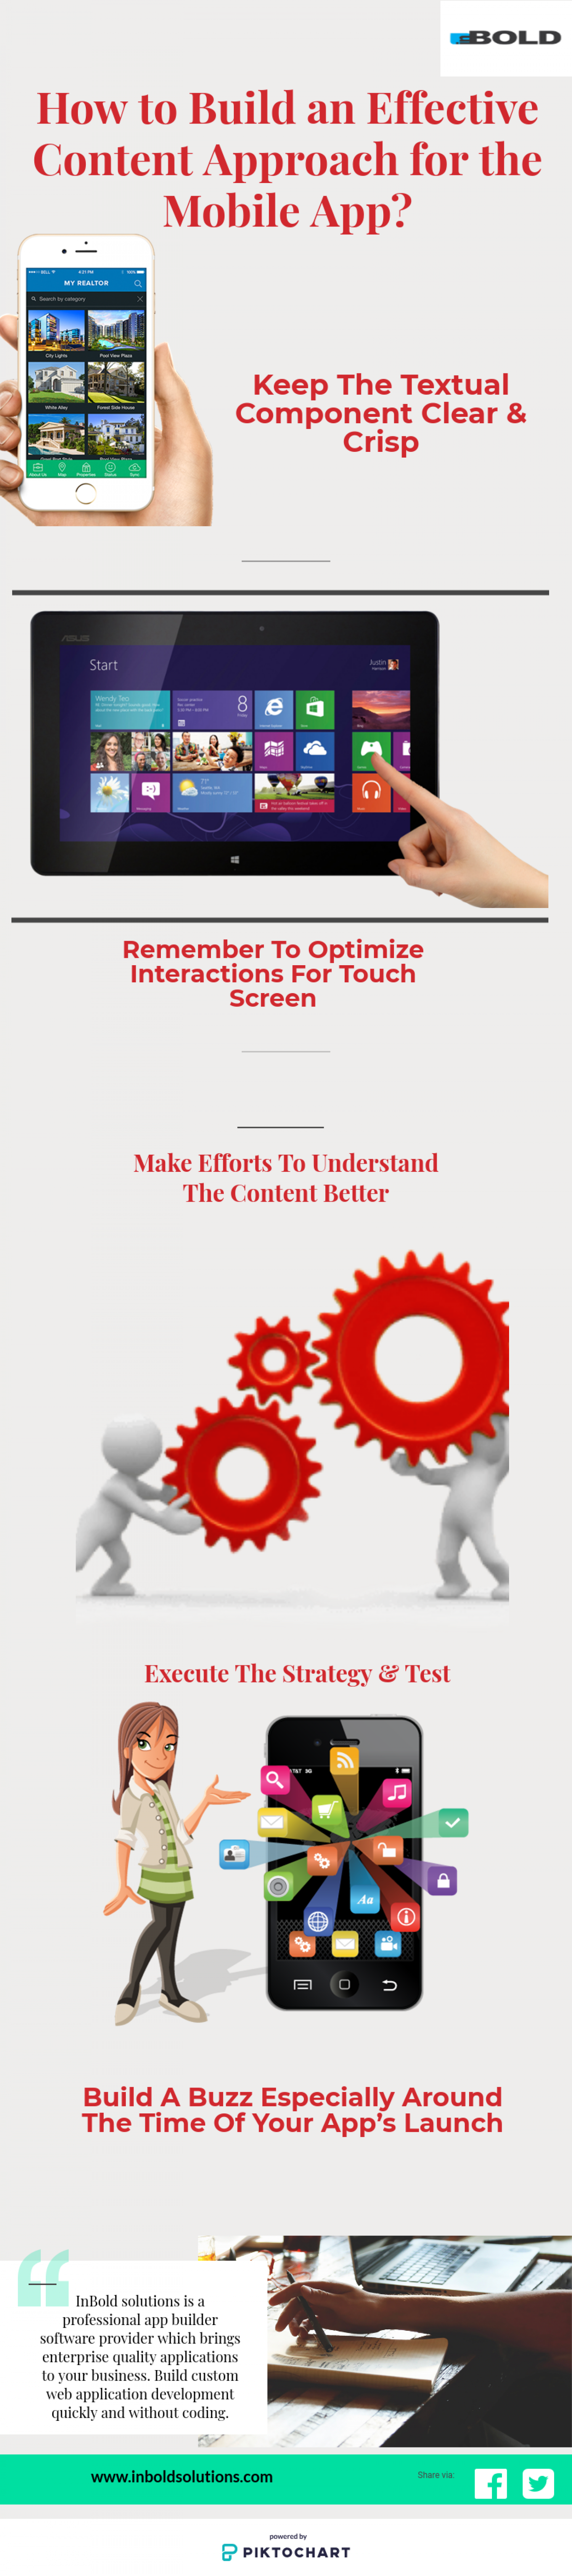 Build an Effective Content Approach for the Mobile App Infographic